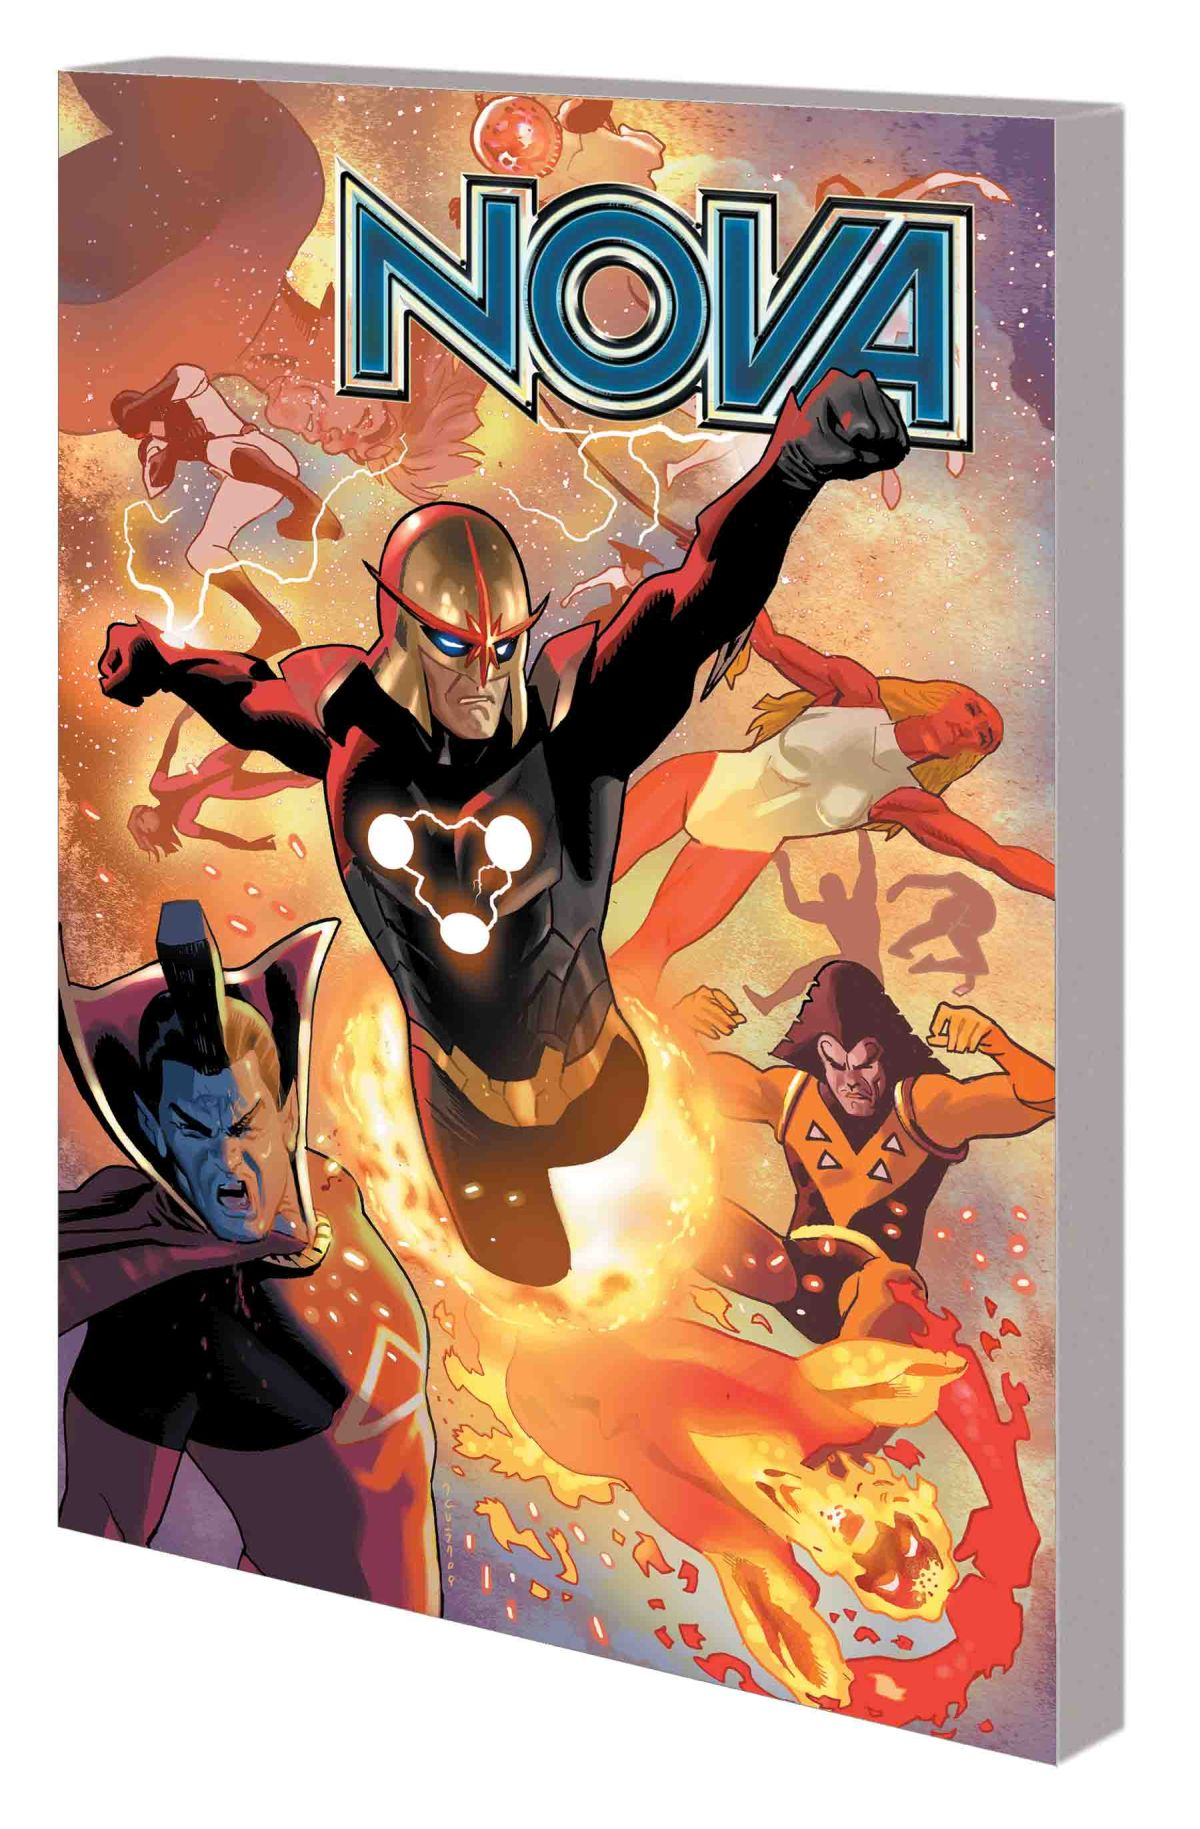 NOVA BY ABNETT & LANNING: THE COMPLETE COLLECTION VOL. 2 TPB